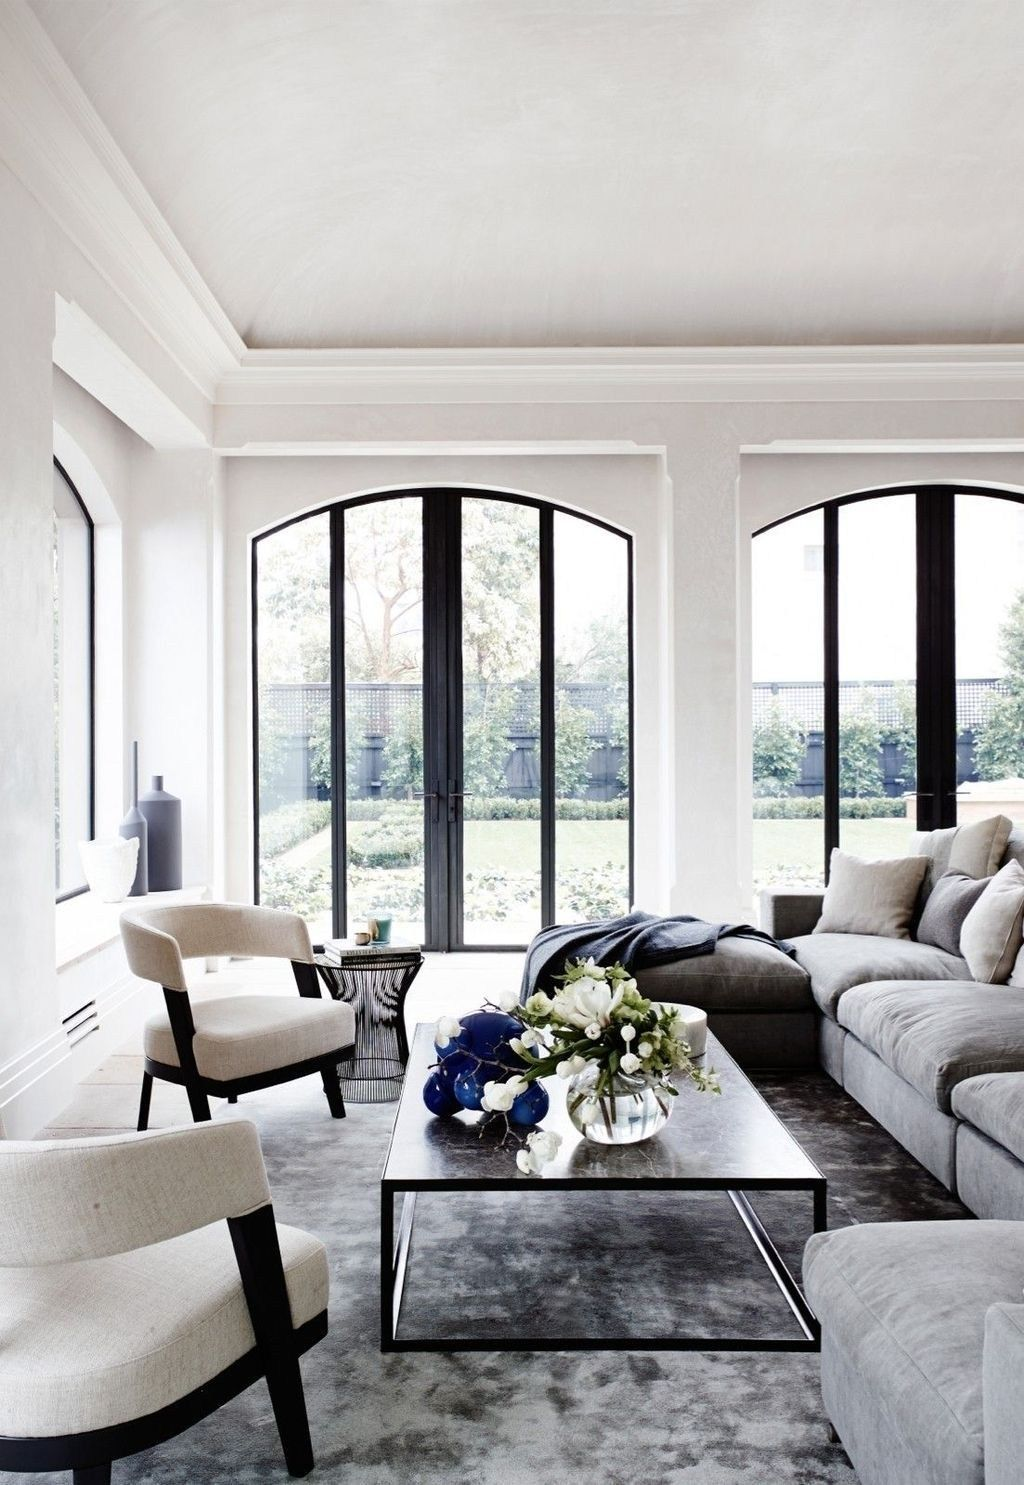 Affordable Apartment Living Room Design Ideas With Black And White Style 46 Contemporary Dining Room Design Living Room Design Modern Elegant Living Room Modern elegant living room